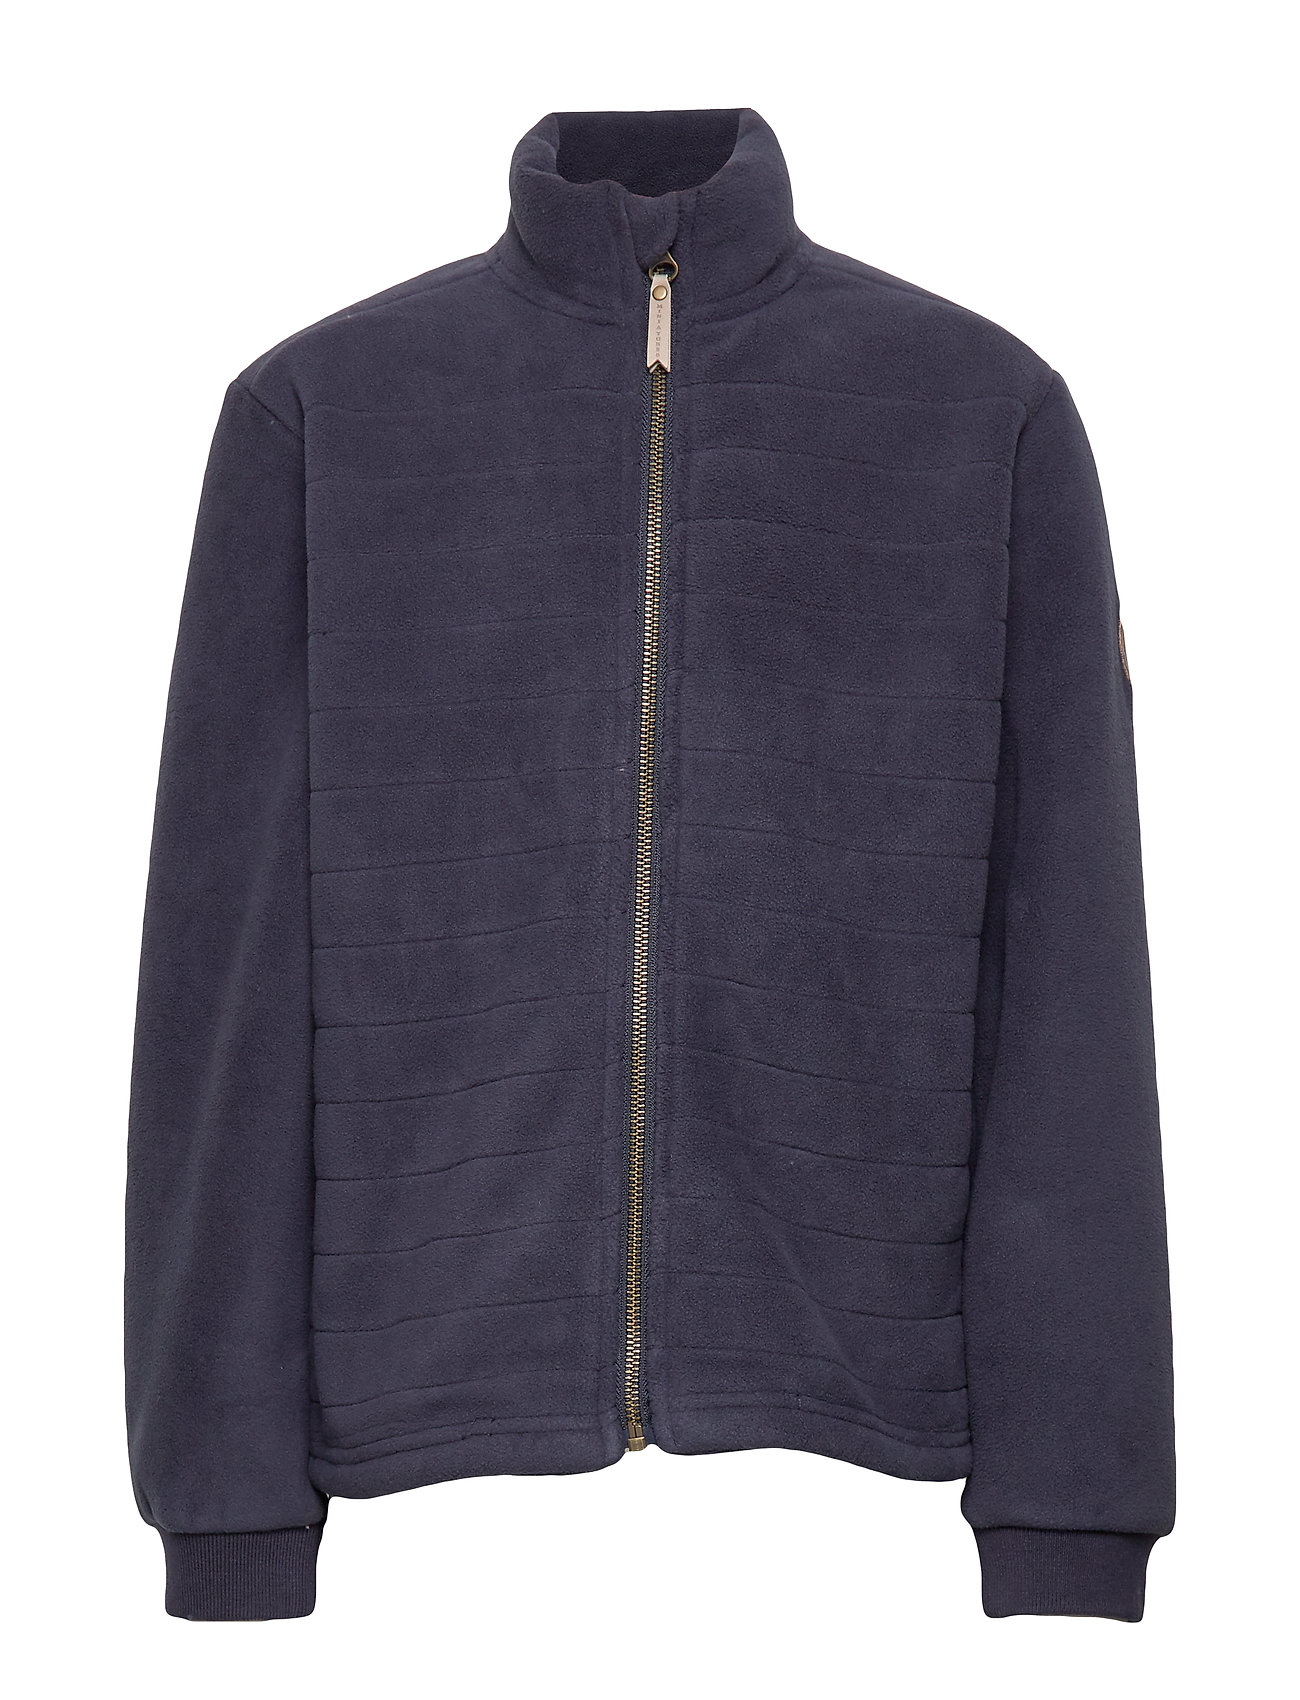 Mini A Ture Geal Zip Jacket, MK - GRAPHITE BLUE